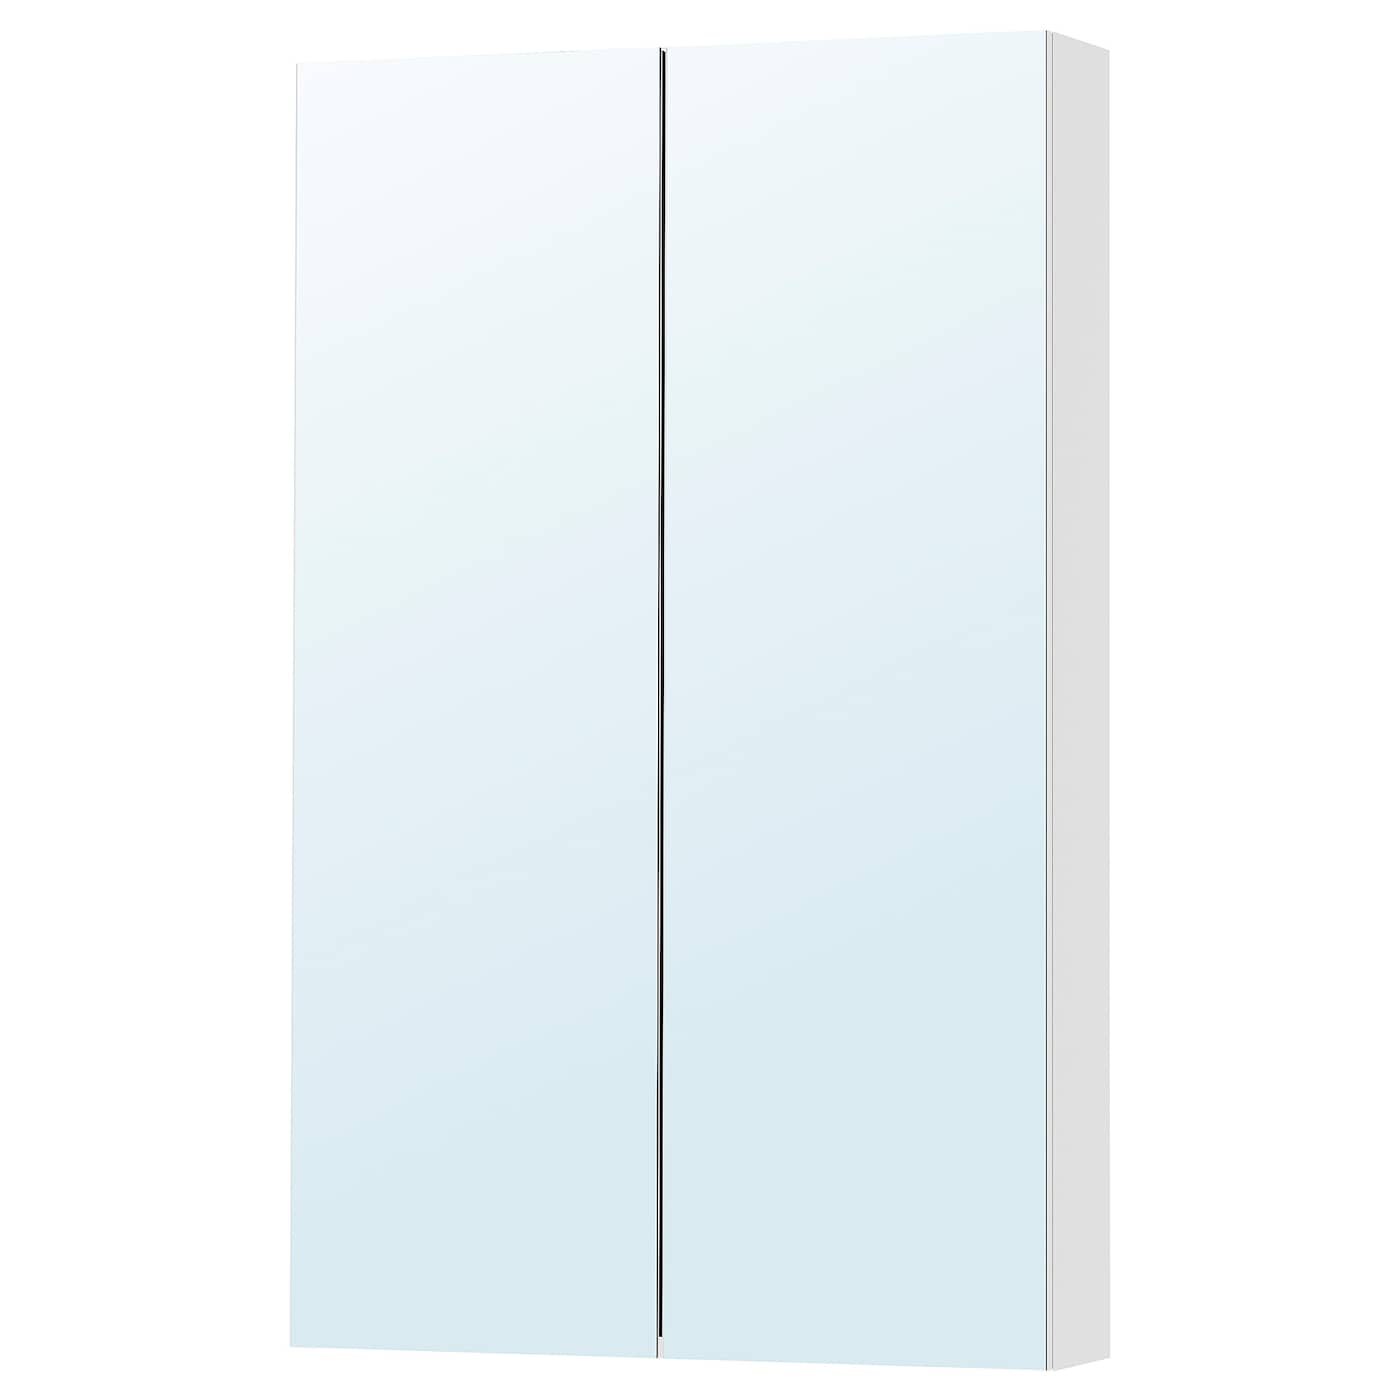 "GODMORGON Mirror cabinet with 11212 doors 11211212 11212/11212x11212 112/11212x12 12/12 "" (12x11212x12 cm)"